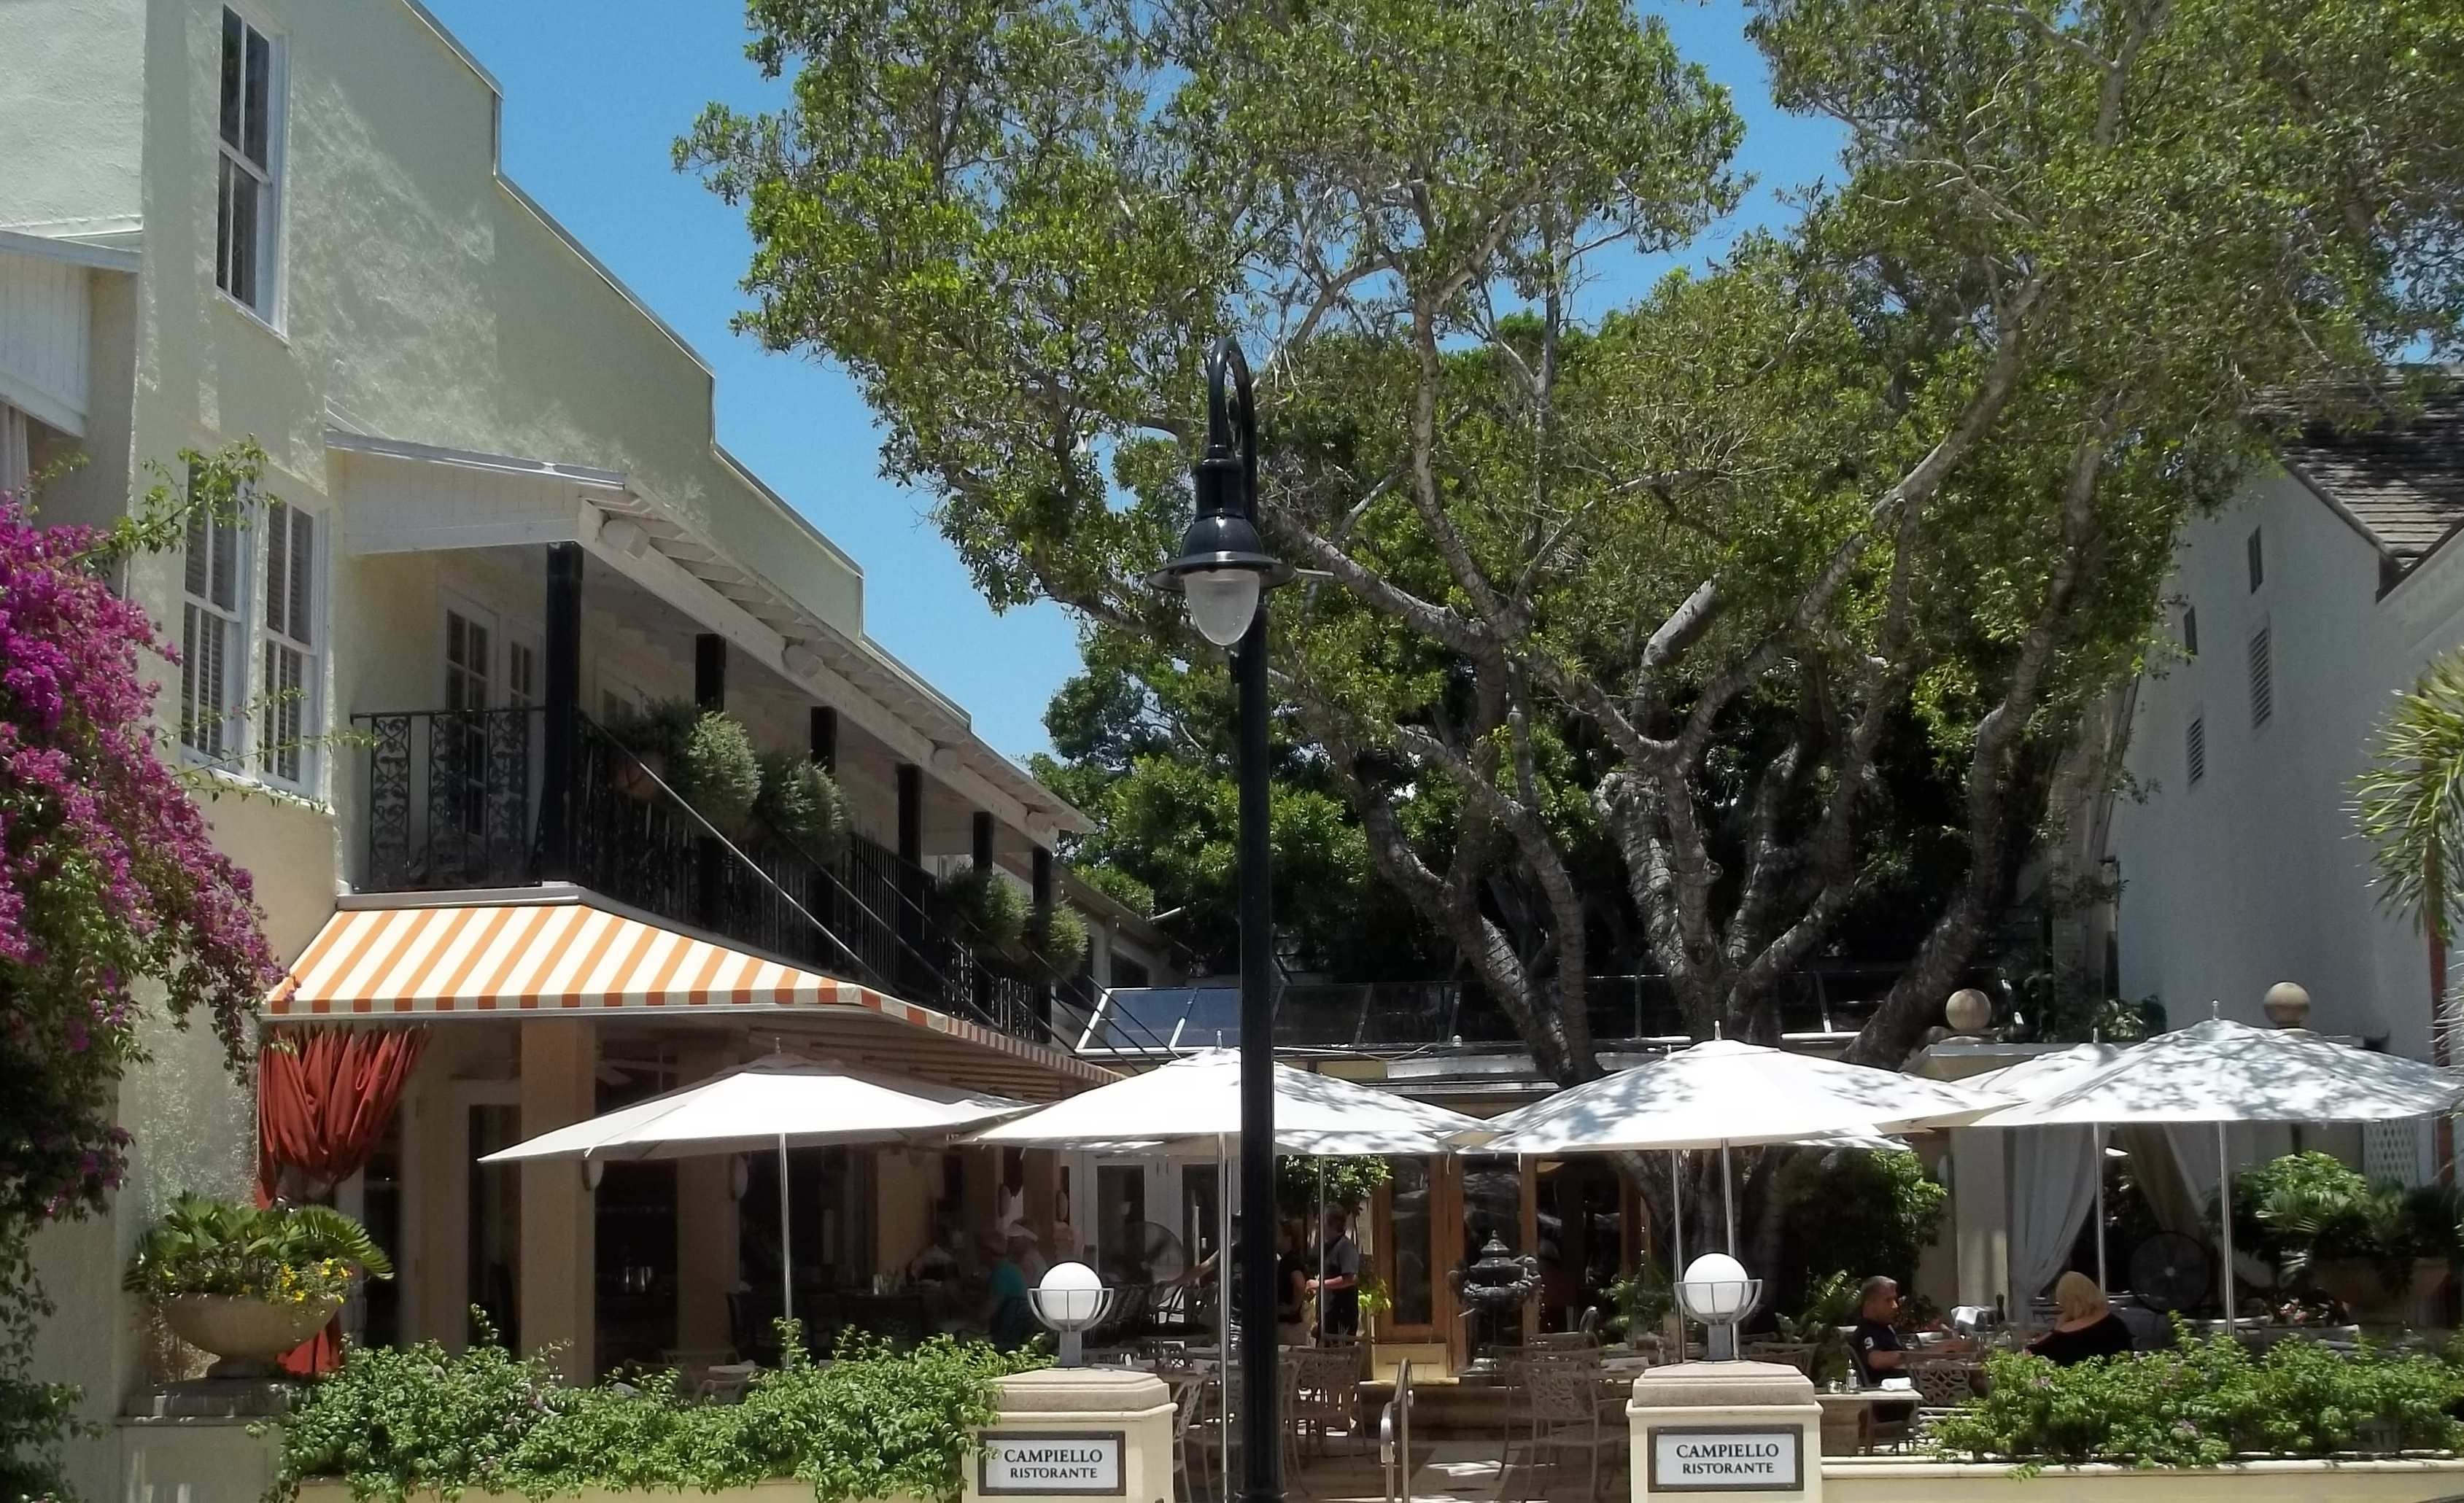 Pin by SunStream Hotels & Resorts on Beauty of Naples FL ...